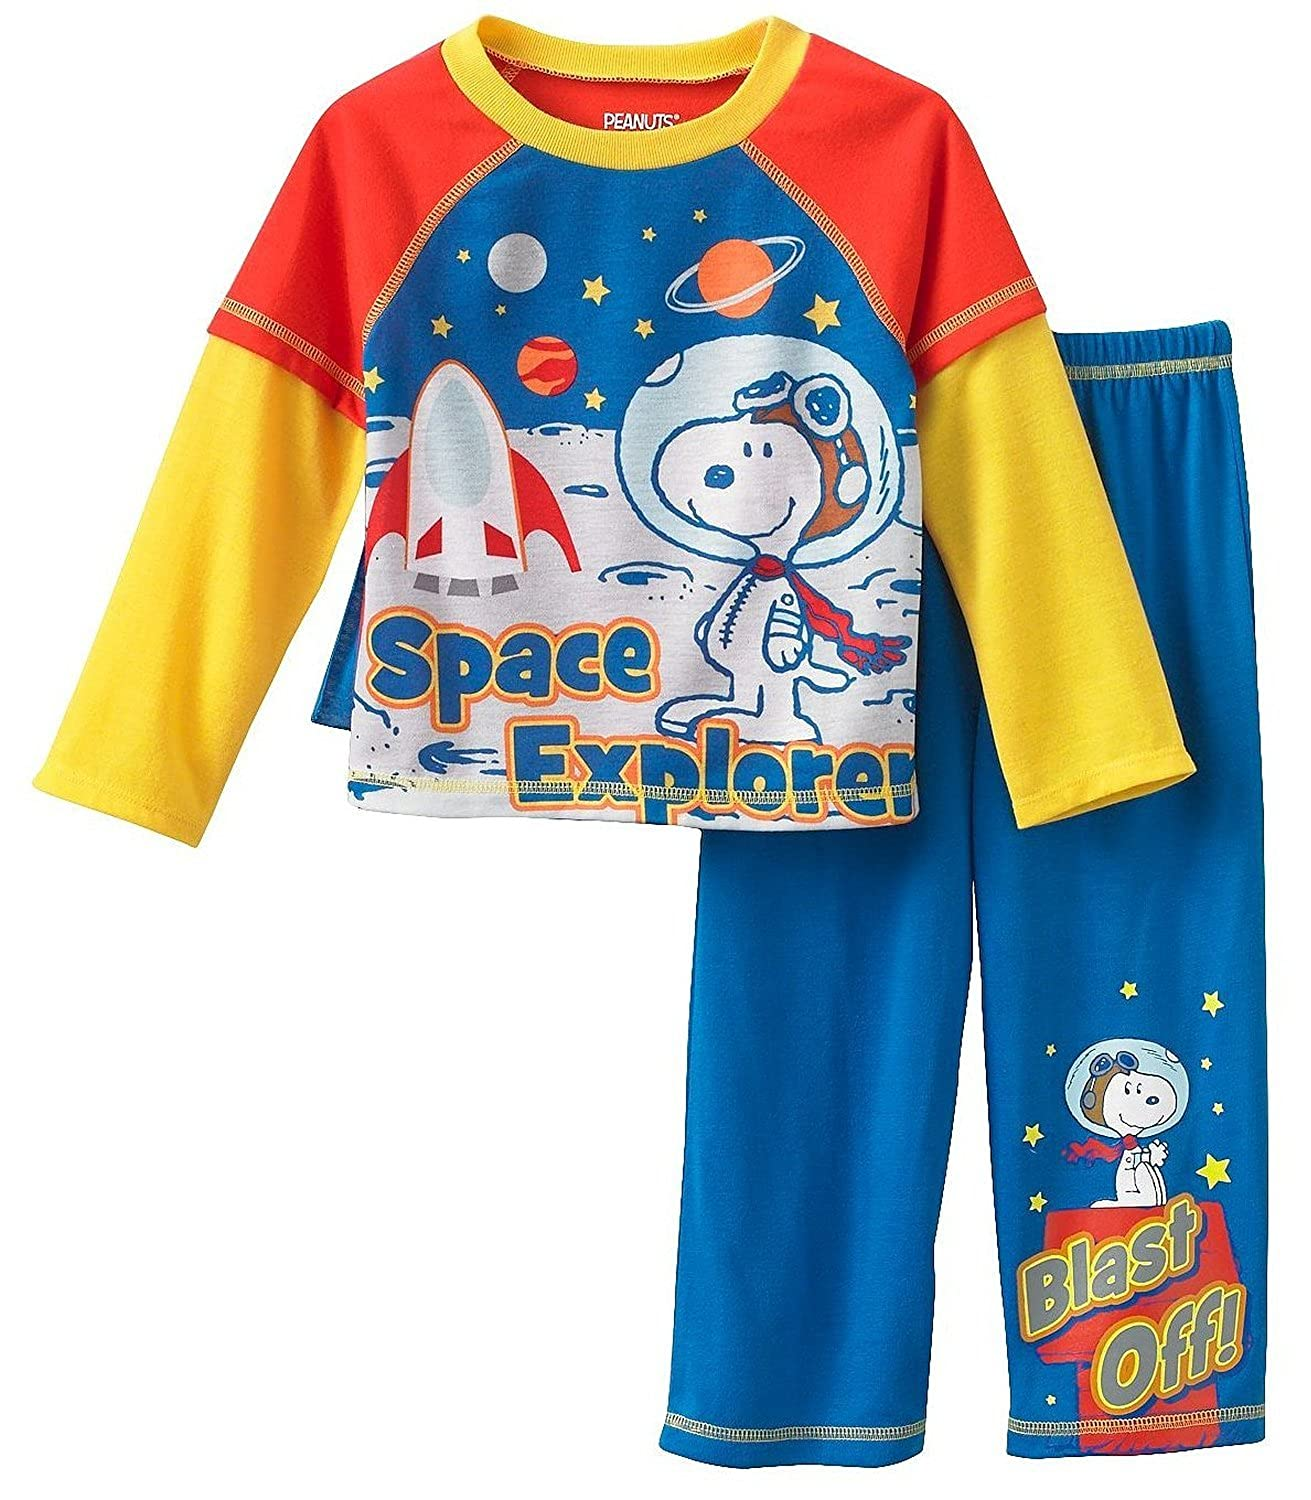 Peanuts Snoopy Space Explorer Toddler Layered Boys Pajama with Cape, Sizes 2T-4T Size 2T